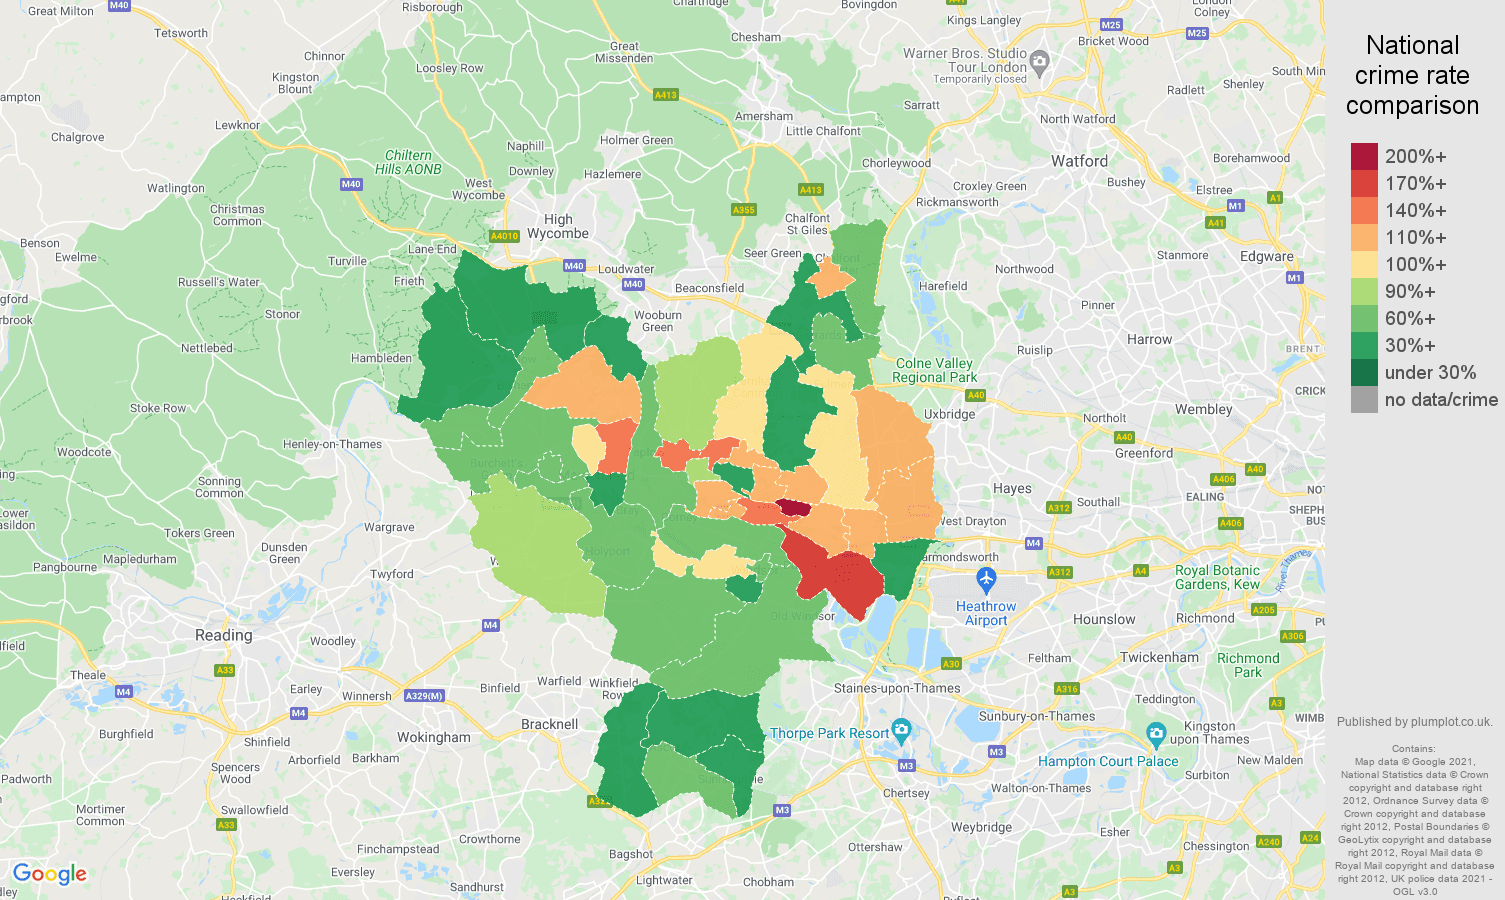 Slough criminal damage and arson crime rate comparison map